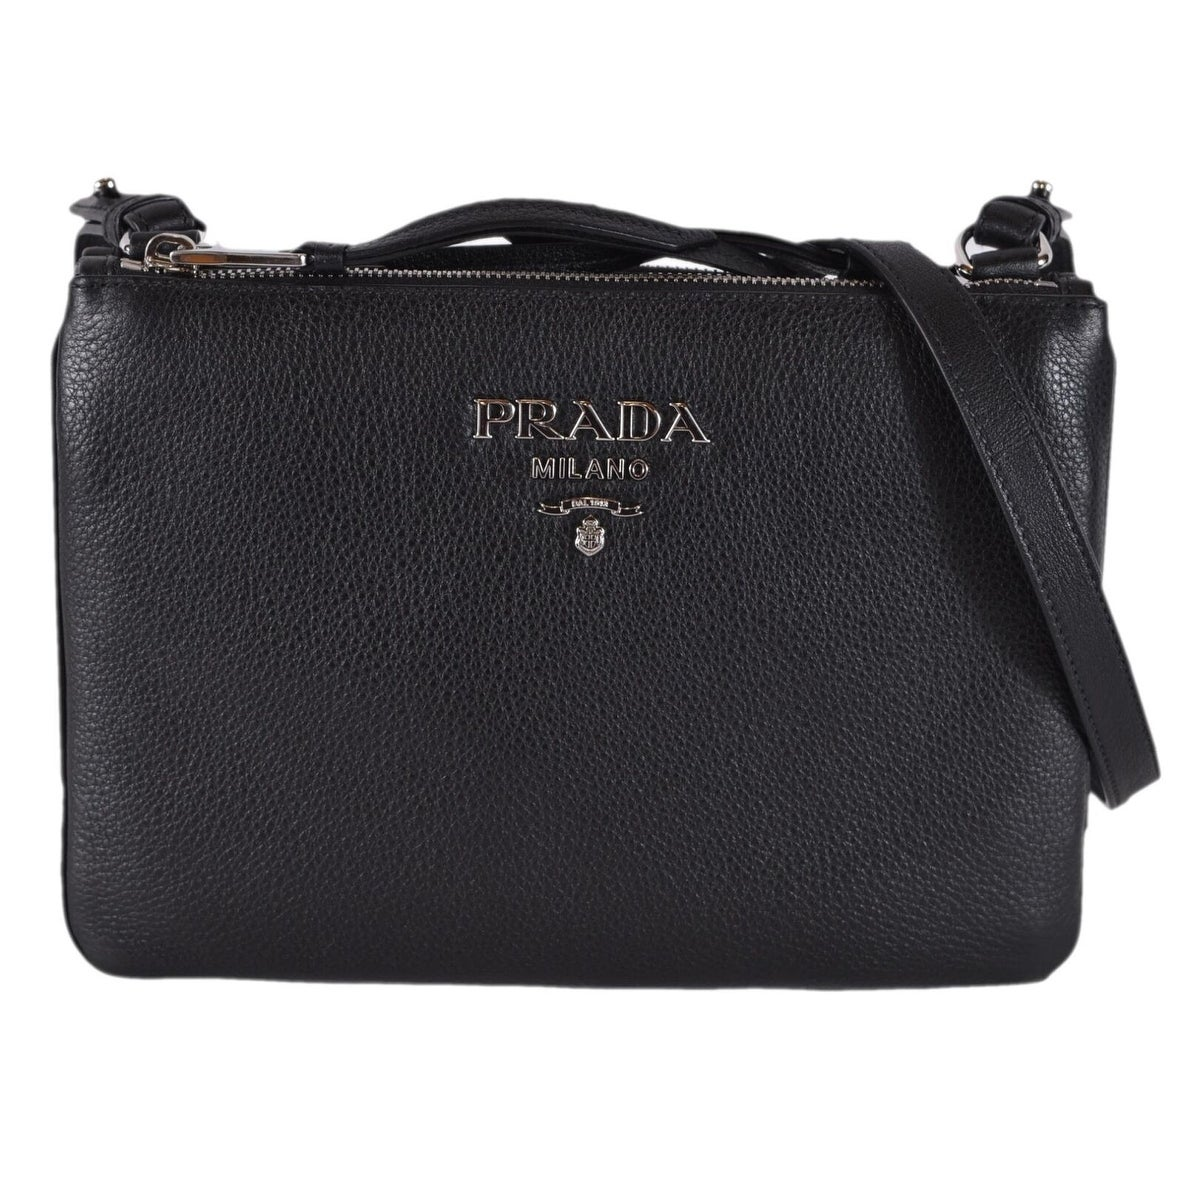 f99897b53d46b8 Shop Prada 1BH046 Black Vitello Leather Bandoliera Double Zip Crossbody  Purse Bag - Free Shipping Today - Overstock - 27147482